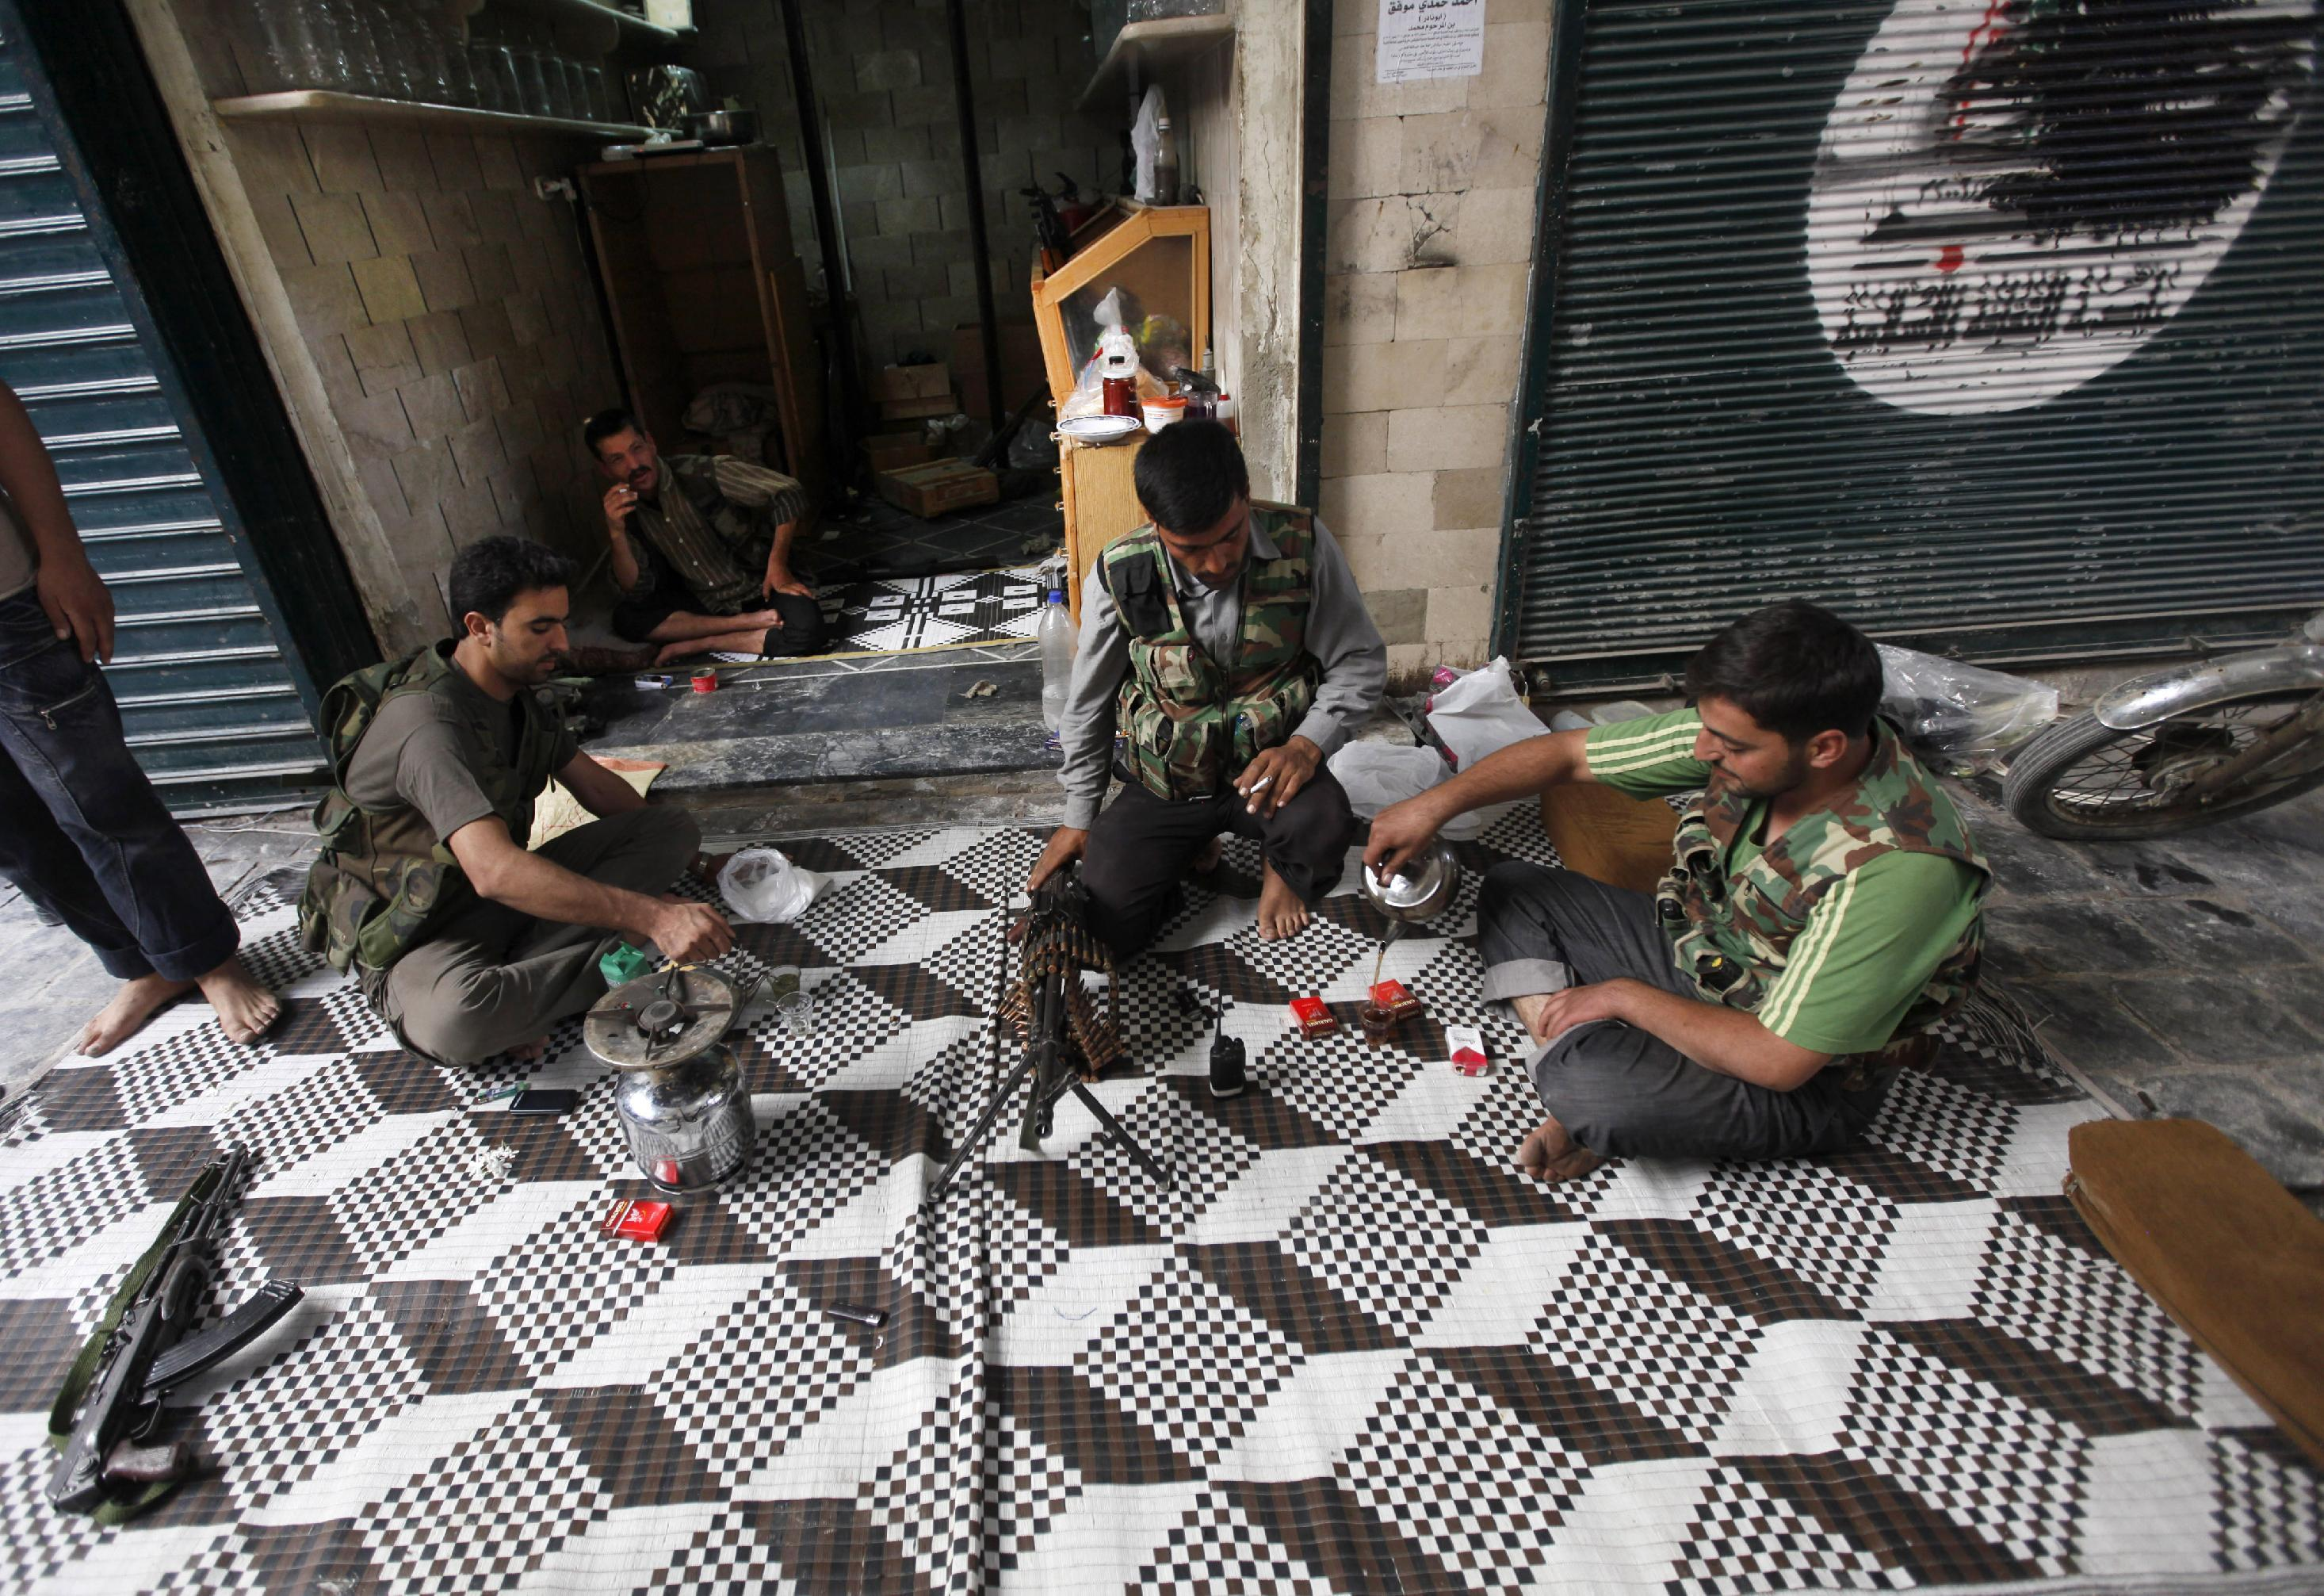 """In this picture taken on Monday September 24, 2012, Free Syrian Army fighters drink tea next to closed shops, at the souk of the old city of Aleppo city, Syria. Fires sparked by clashes between government troops and rebels raged through the medieval marketplace of Aleppo on Saturday, destroying hundreds of shops lining the vaulted passageways where foods, fabrics, perfumes and spices have been sold for centuries, activists said. Arabic writing on the closed shop at right reads:""""Aleppo.""""(AP Photo/Hussein Malla)"""